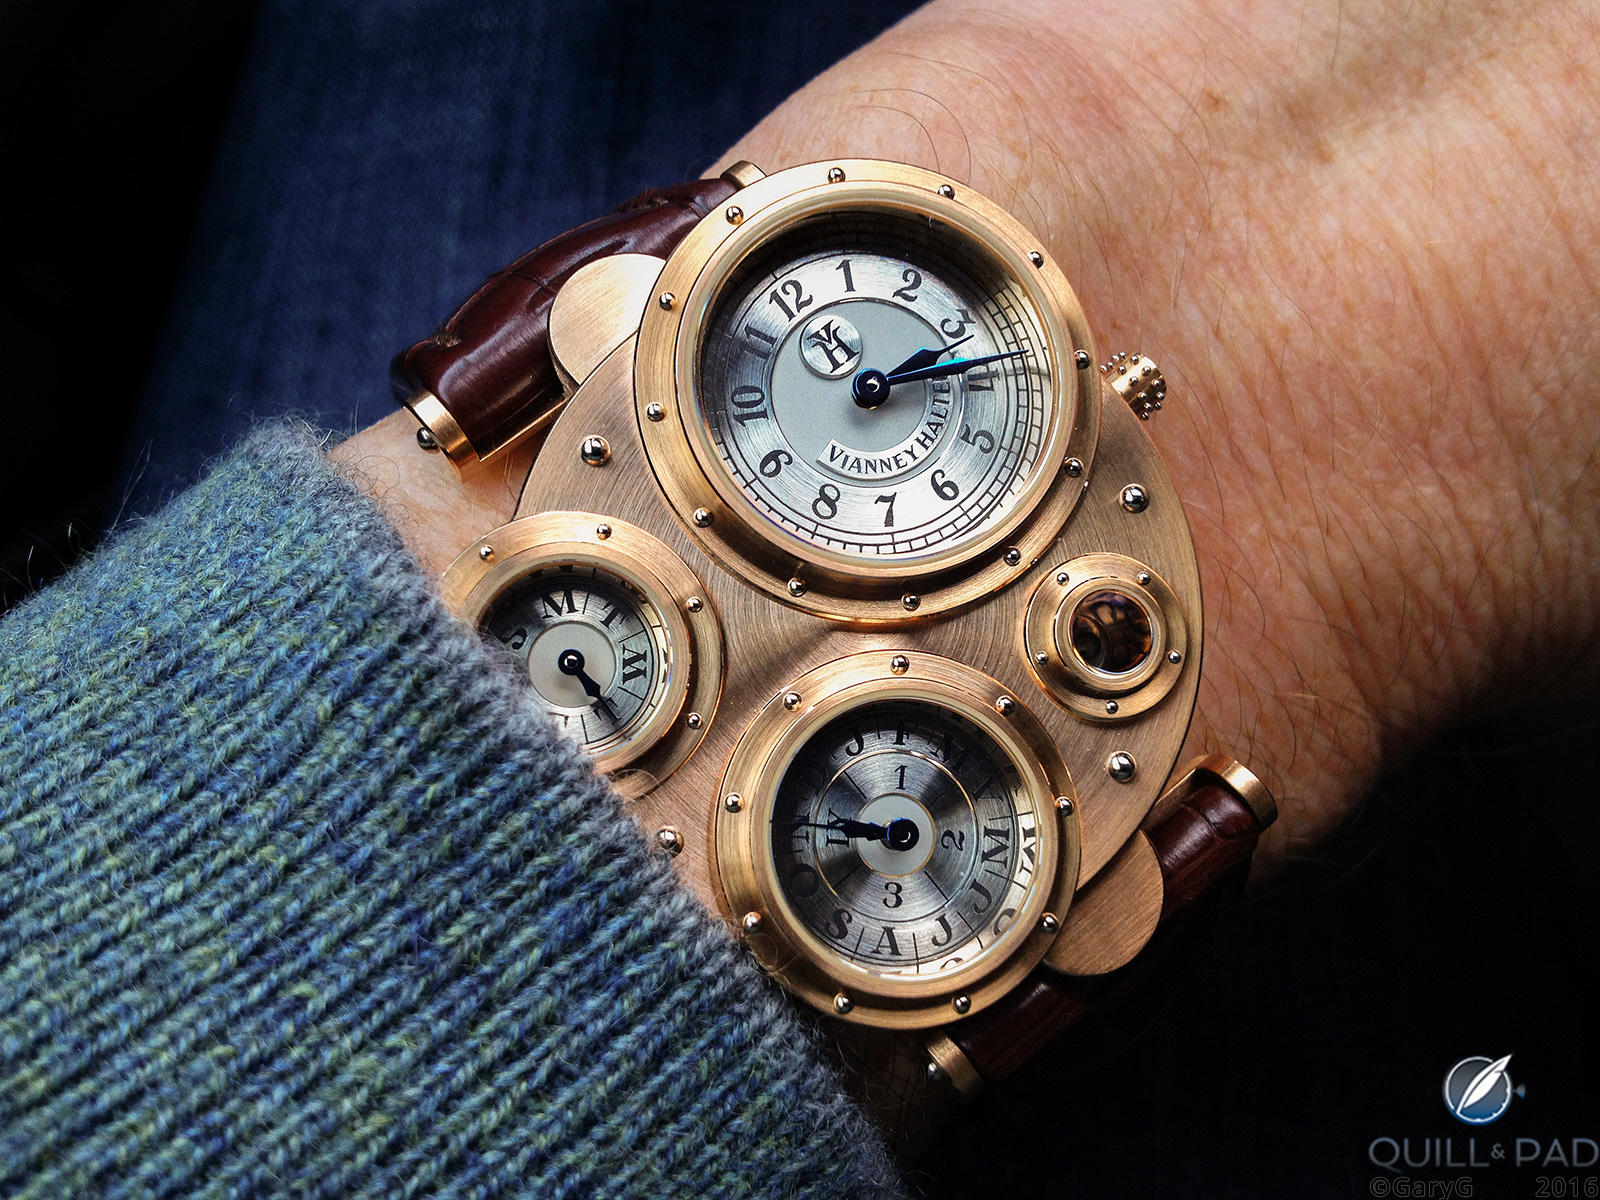 Foundational piece: the author's Vianney Halter Antiqua